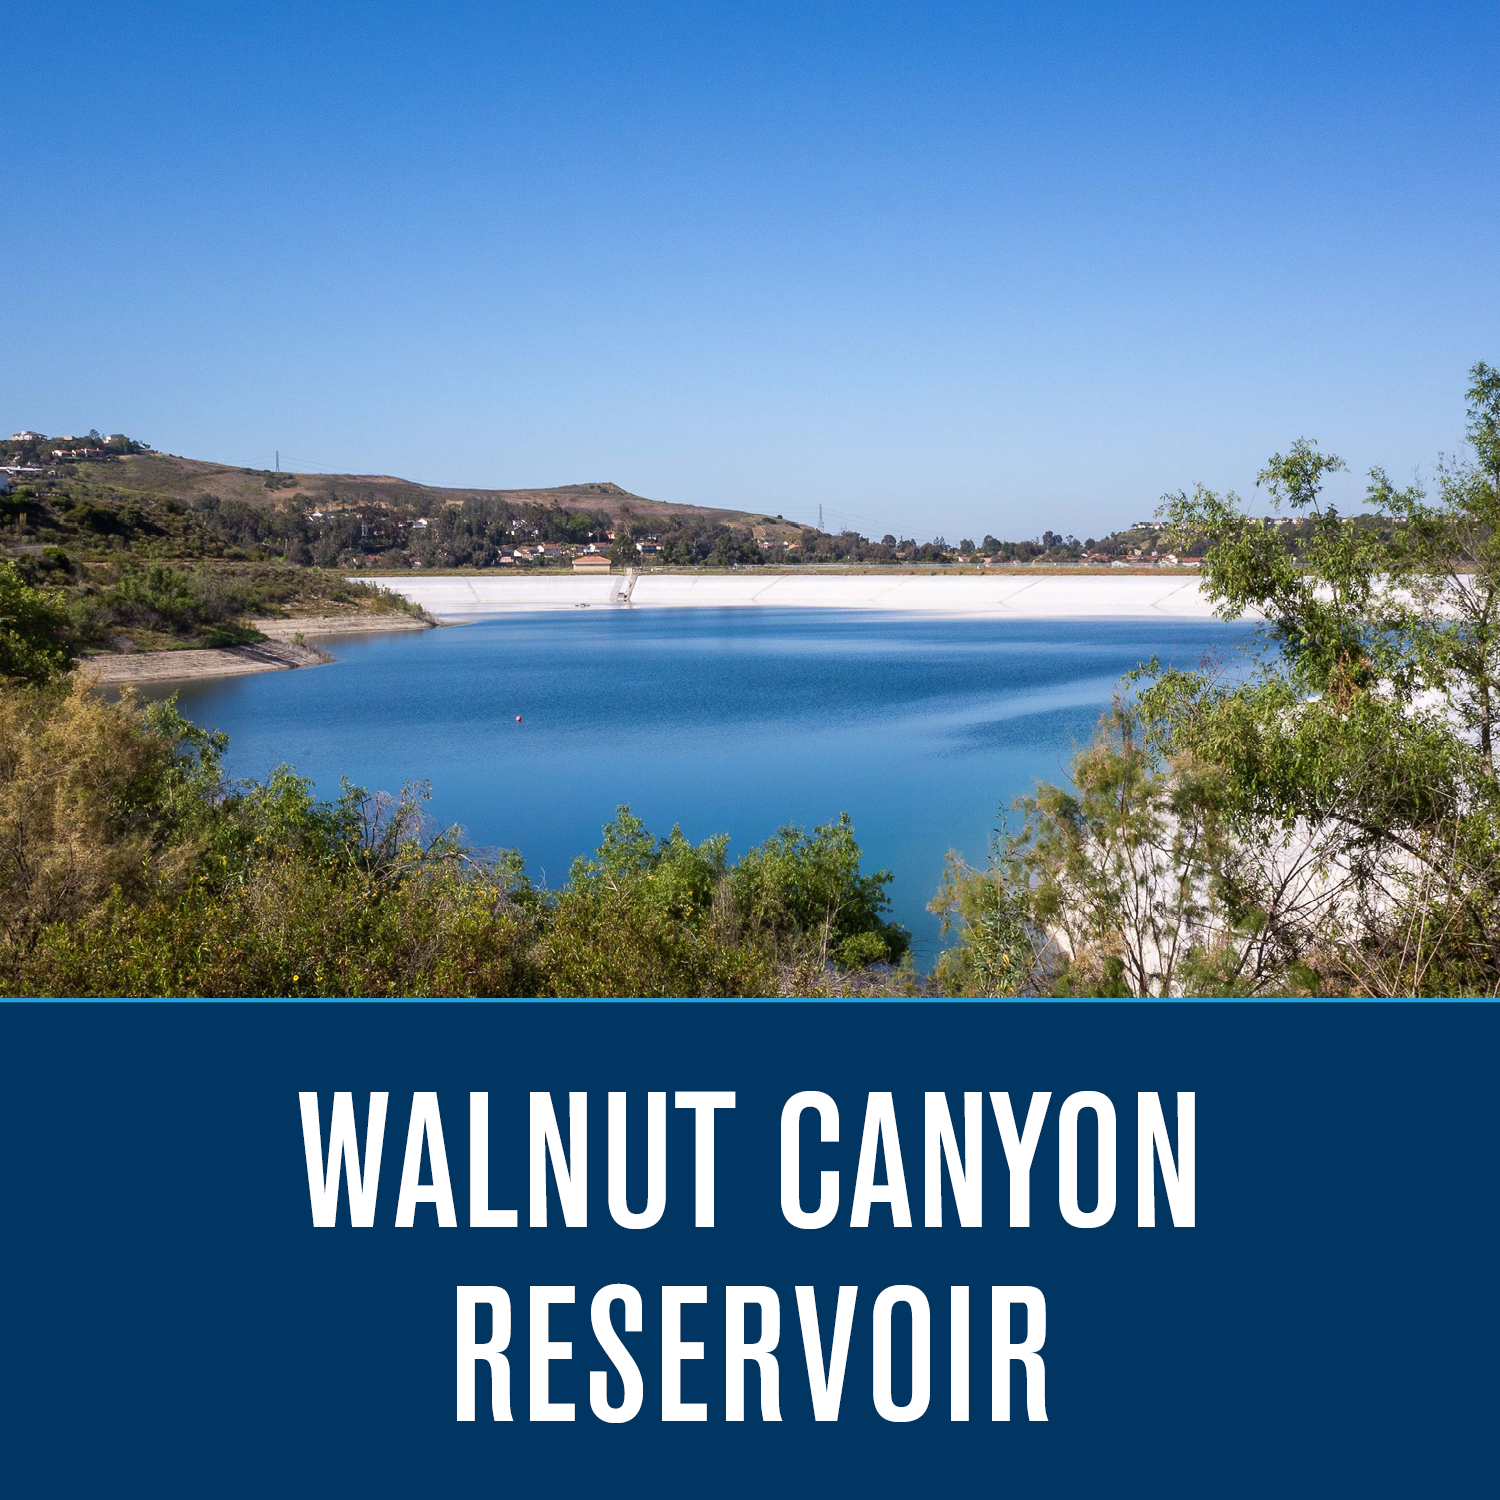 Walnut Canyon Reservoir